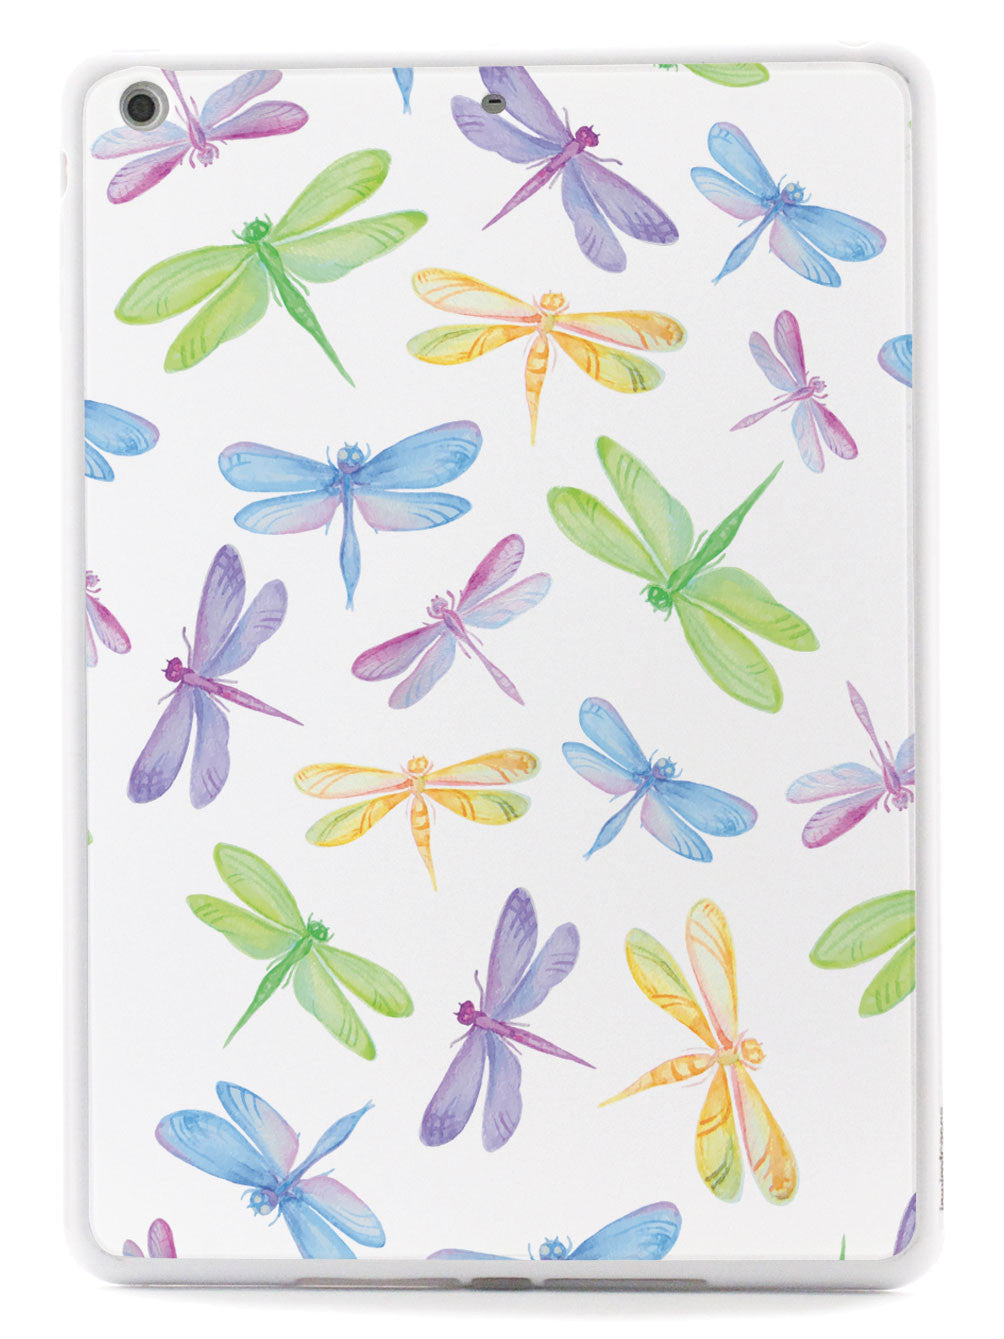 Watercolor Dragonflies Pattern - White Case